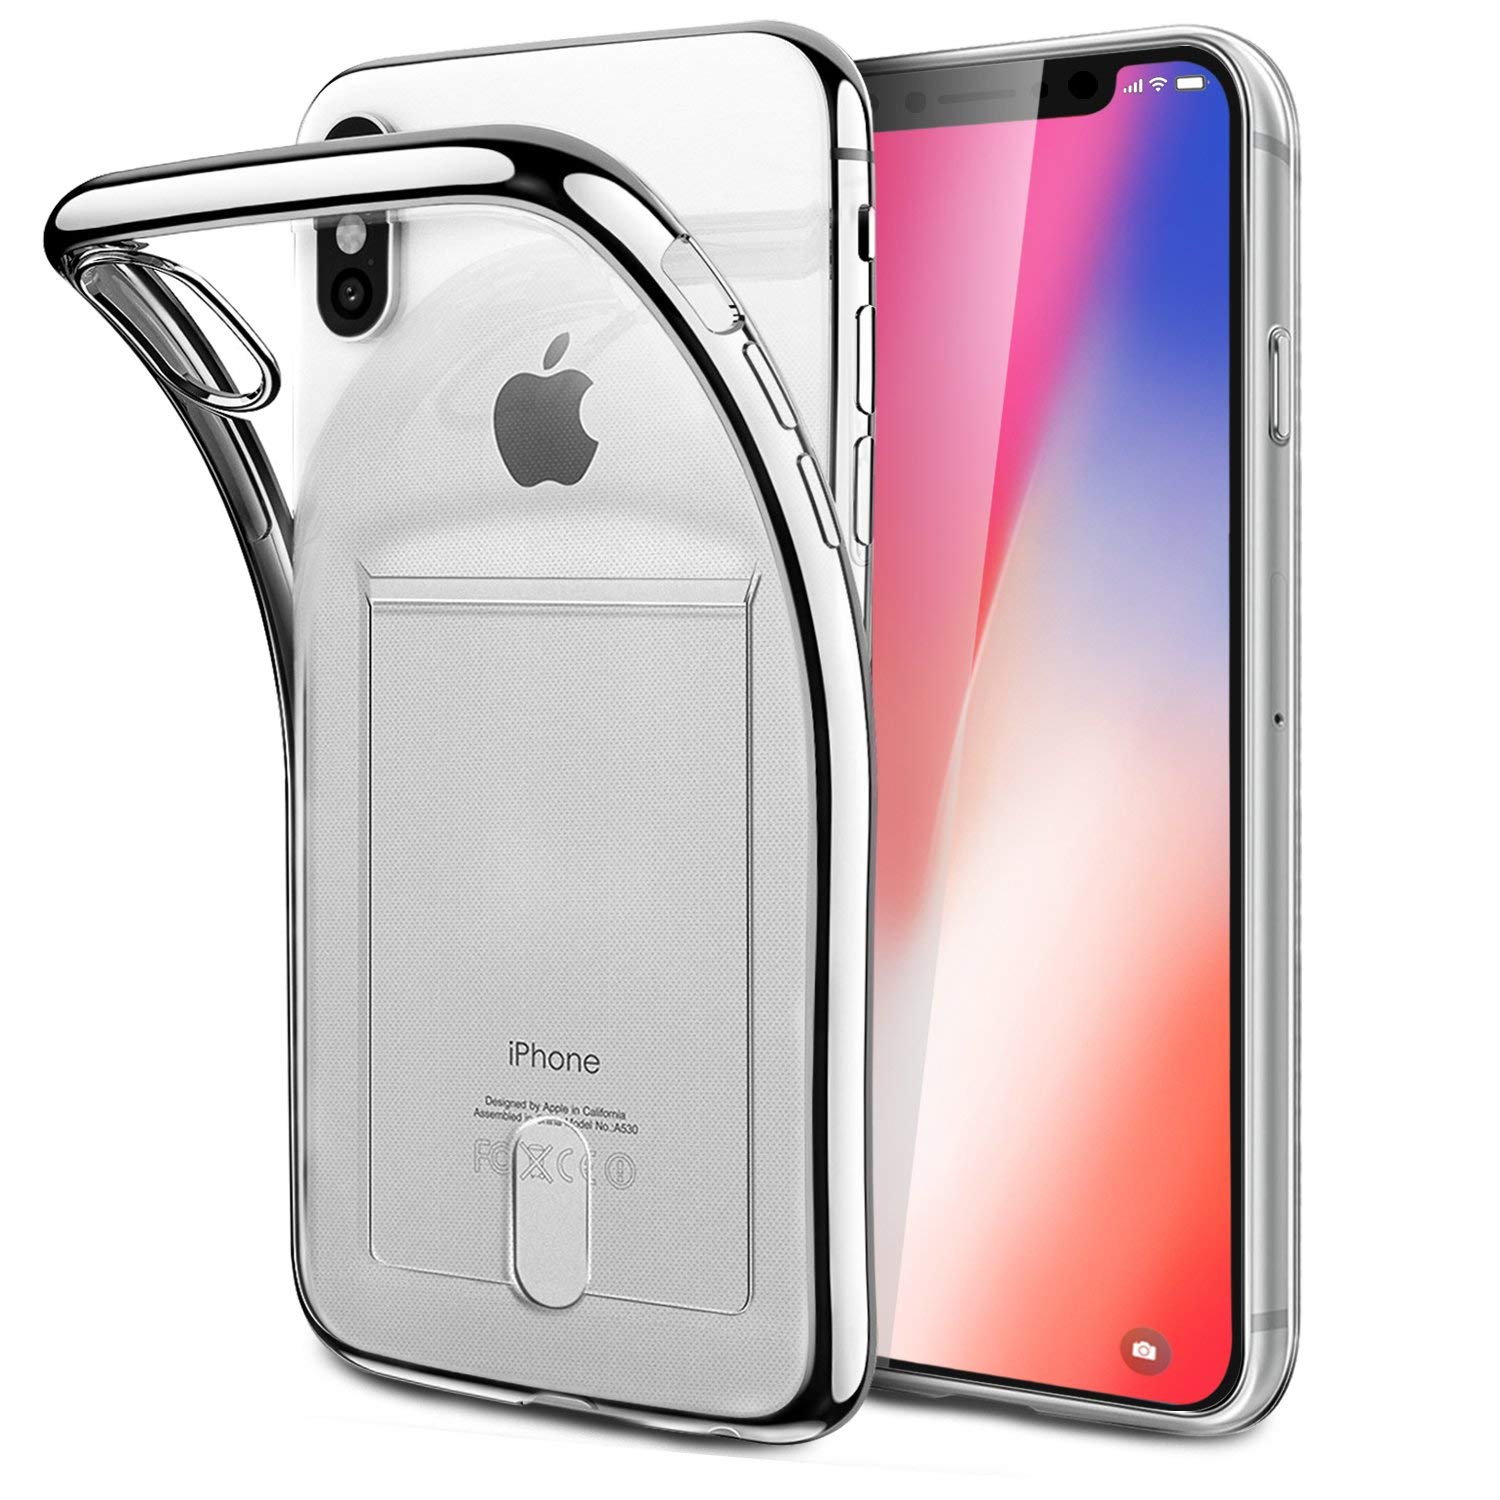 FOGEEK IPhone X Case, IPhone X Case [Slim Fit] Protective Soft Tpu Anti-Scratch & Shock-Absorbing Flexible Case With Card Slot For Apple IPhone X Crystal Clear